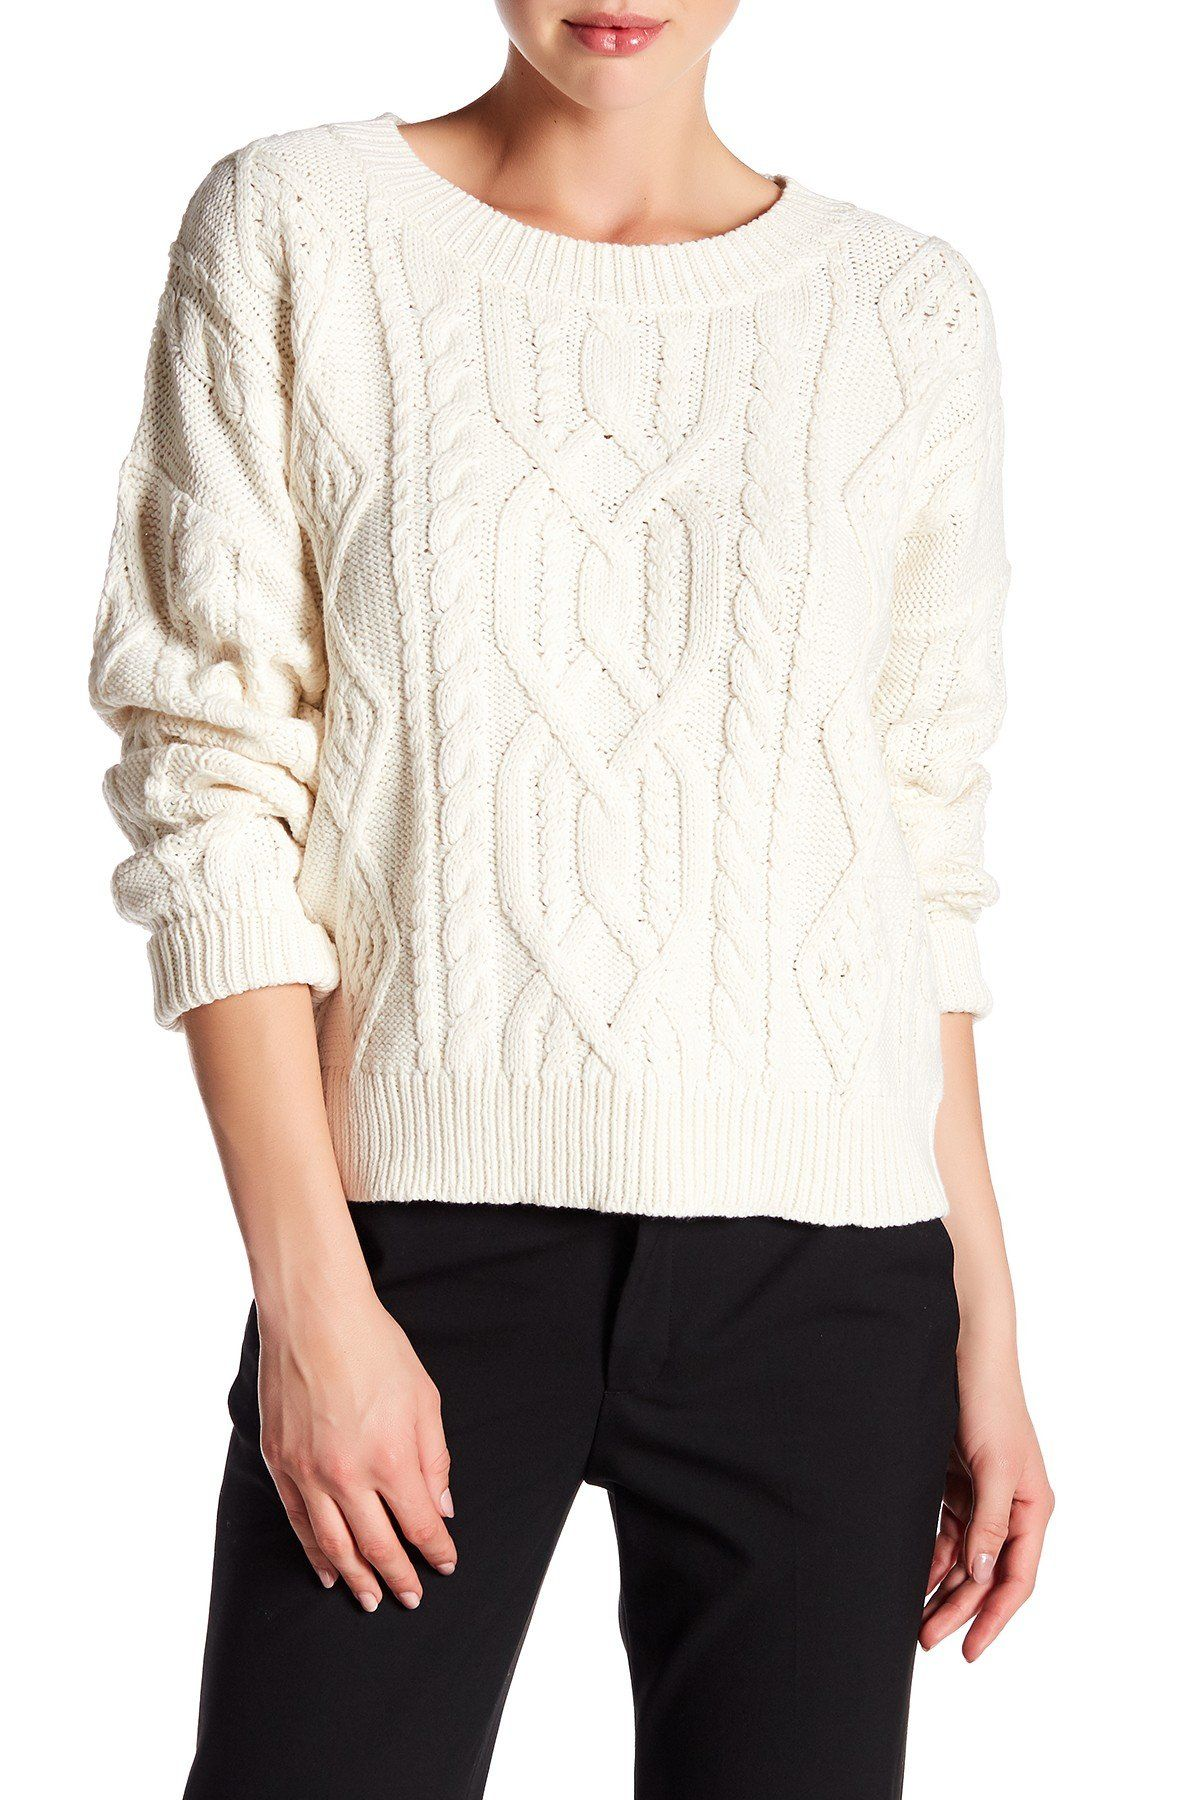 Spencer Sweater 360 cashmere, Sweaters for women, Cashmere